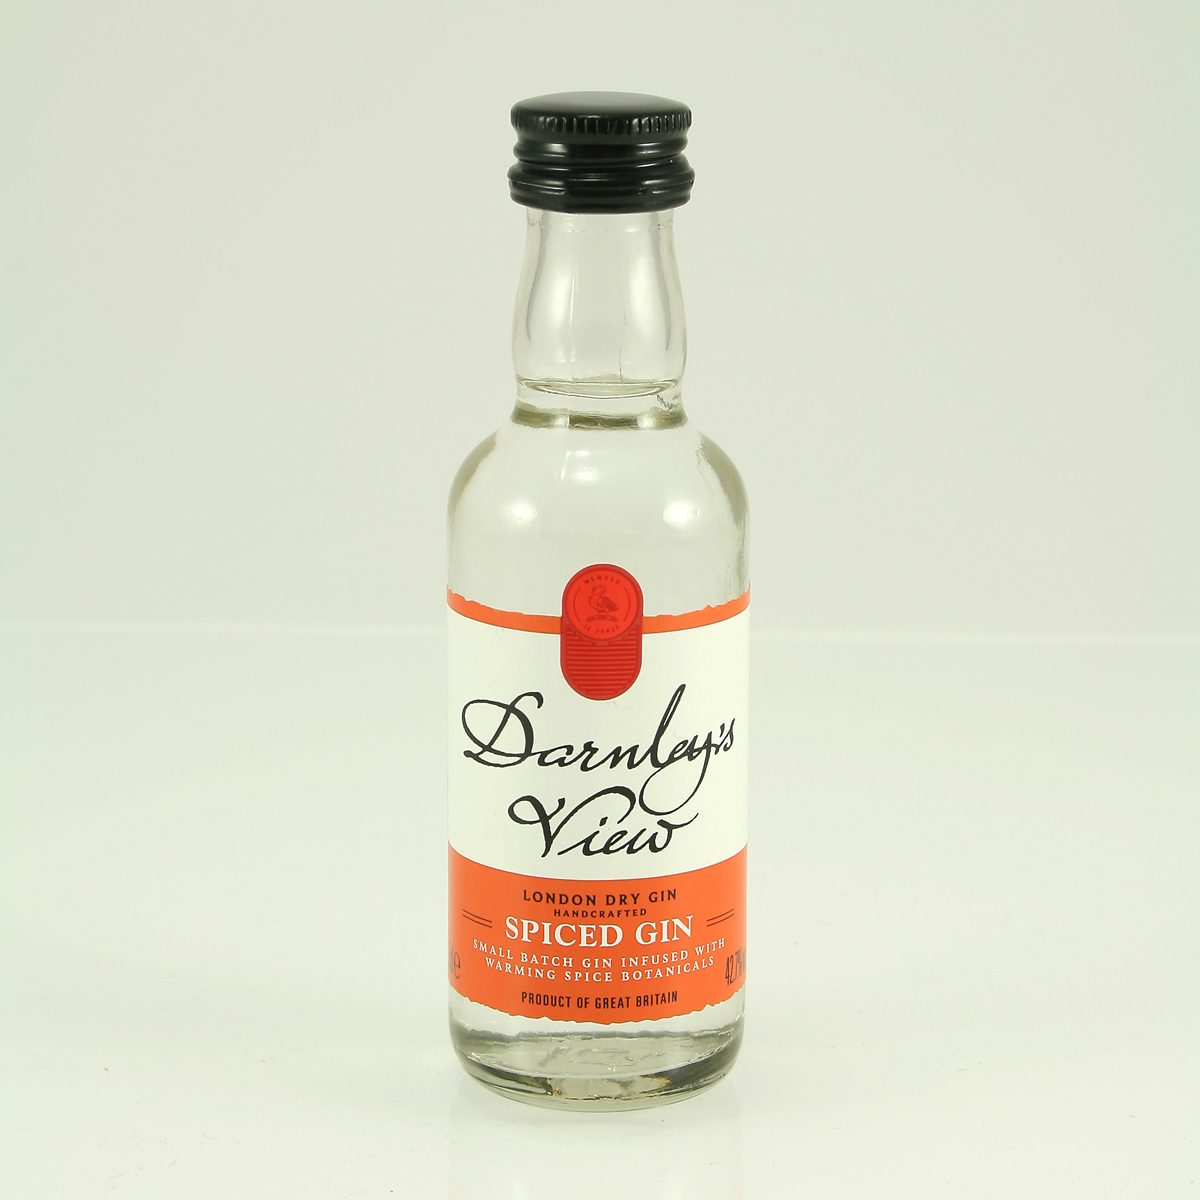 DARNLEY'S VIEW Spiced Gin 42.7% 5cl